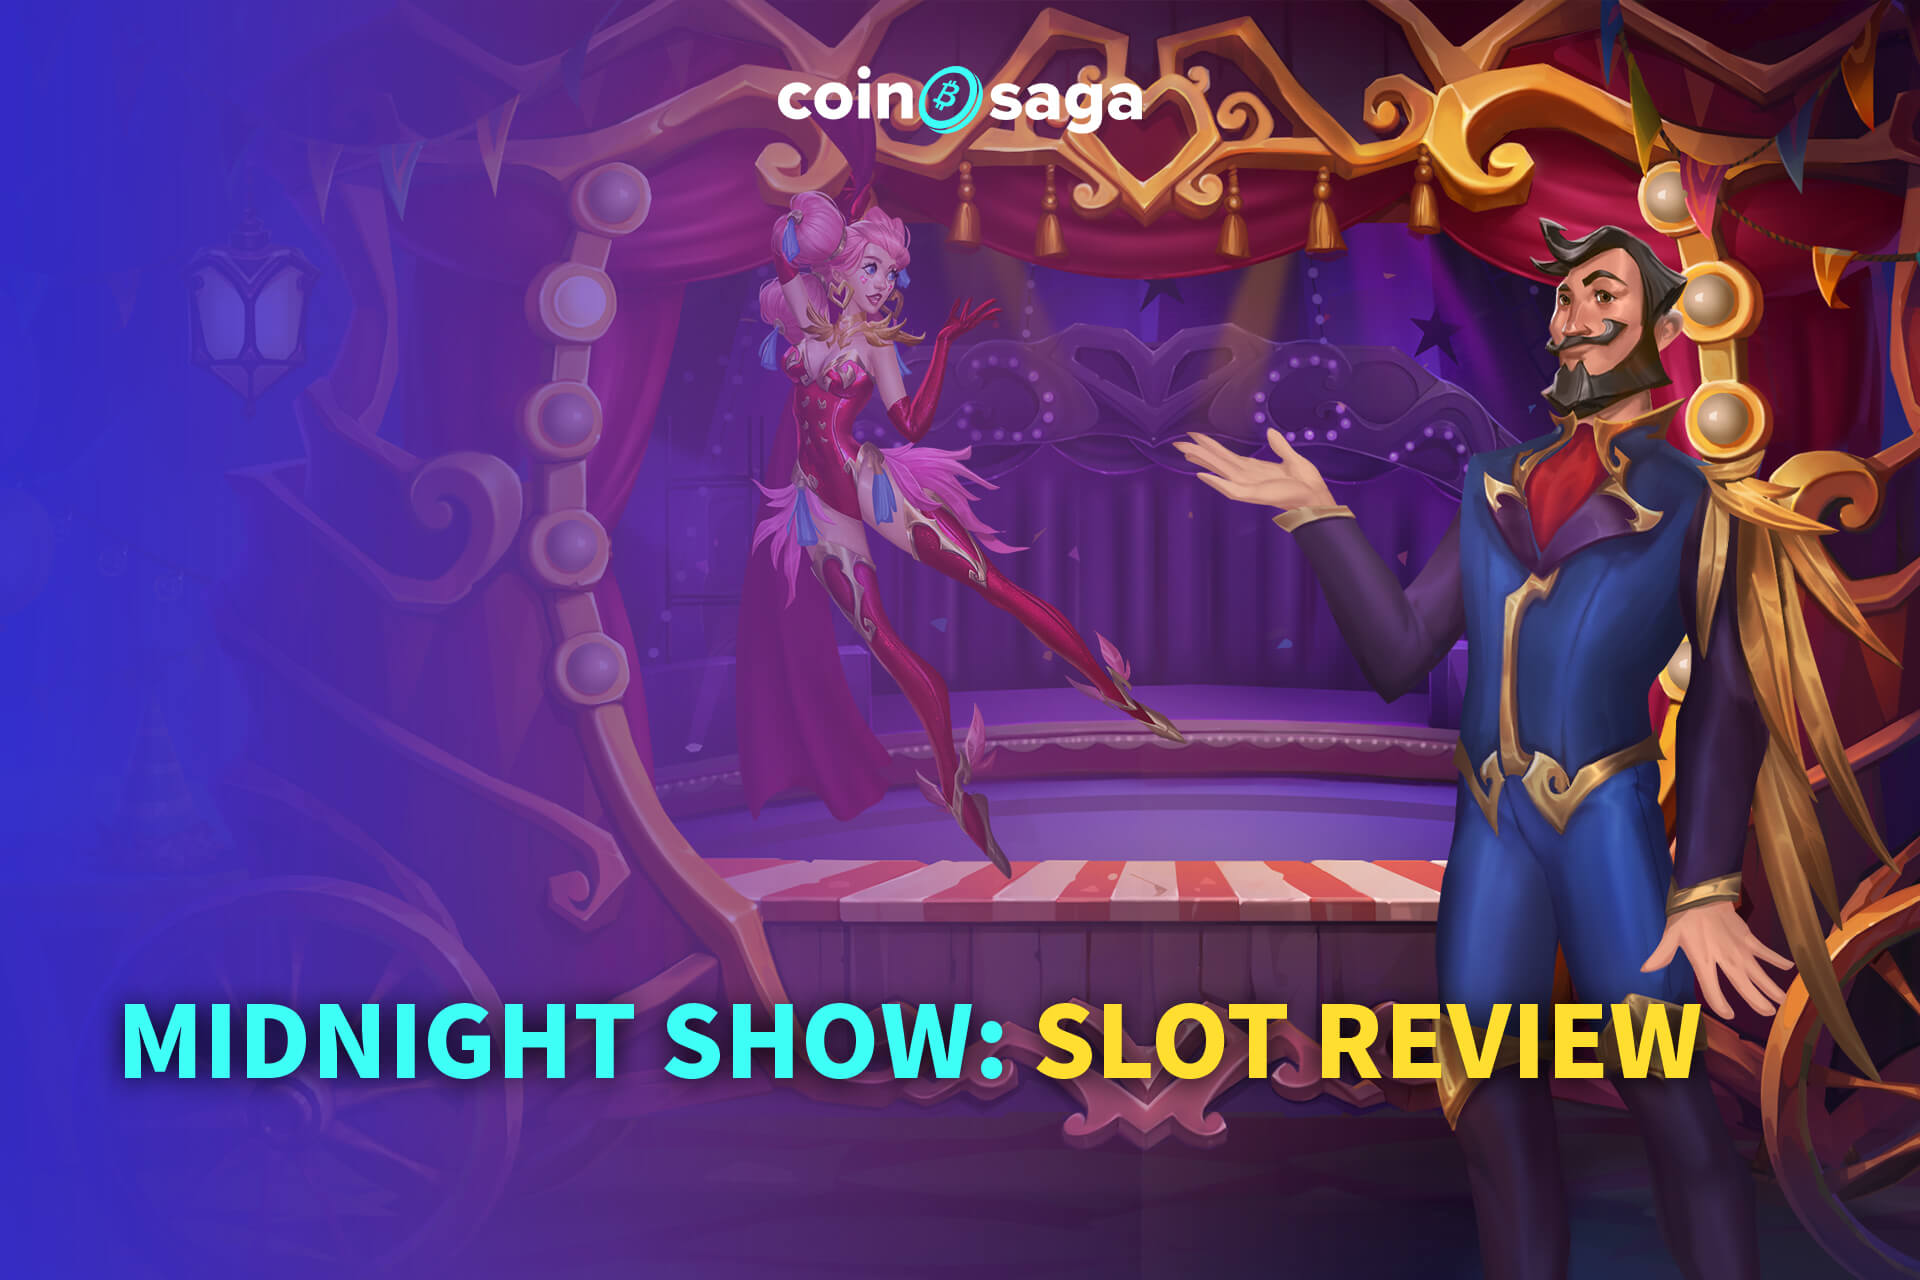 Midnight Show Slot Review